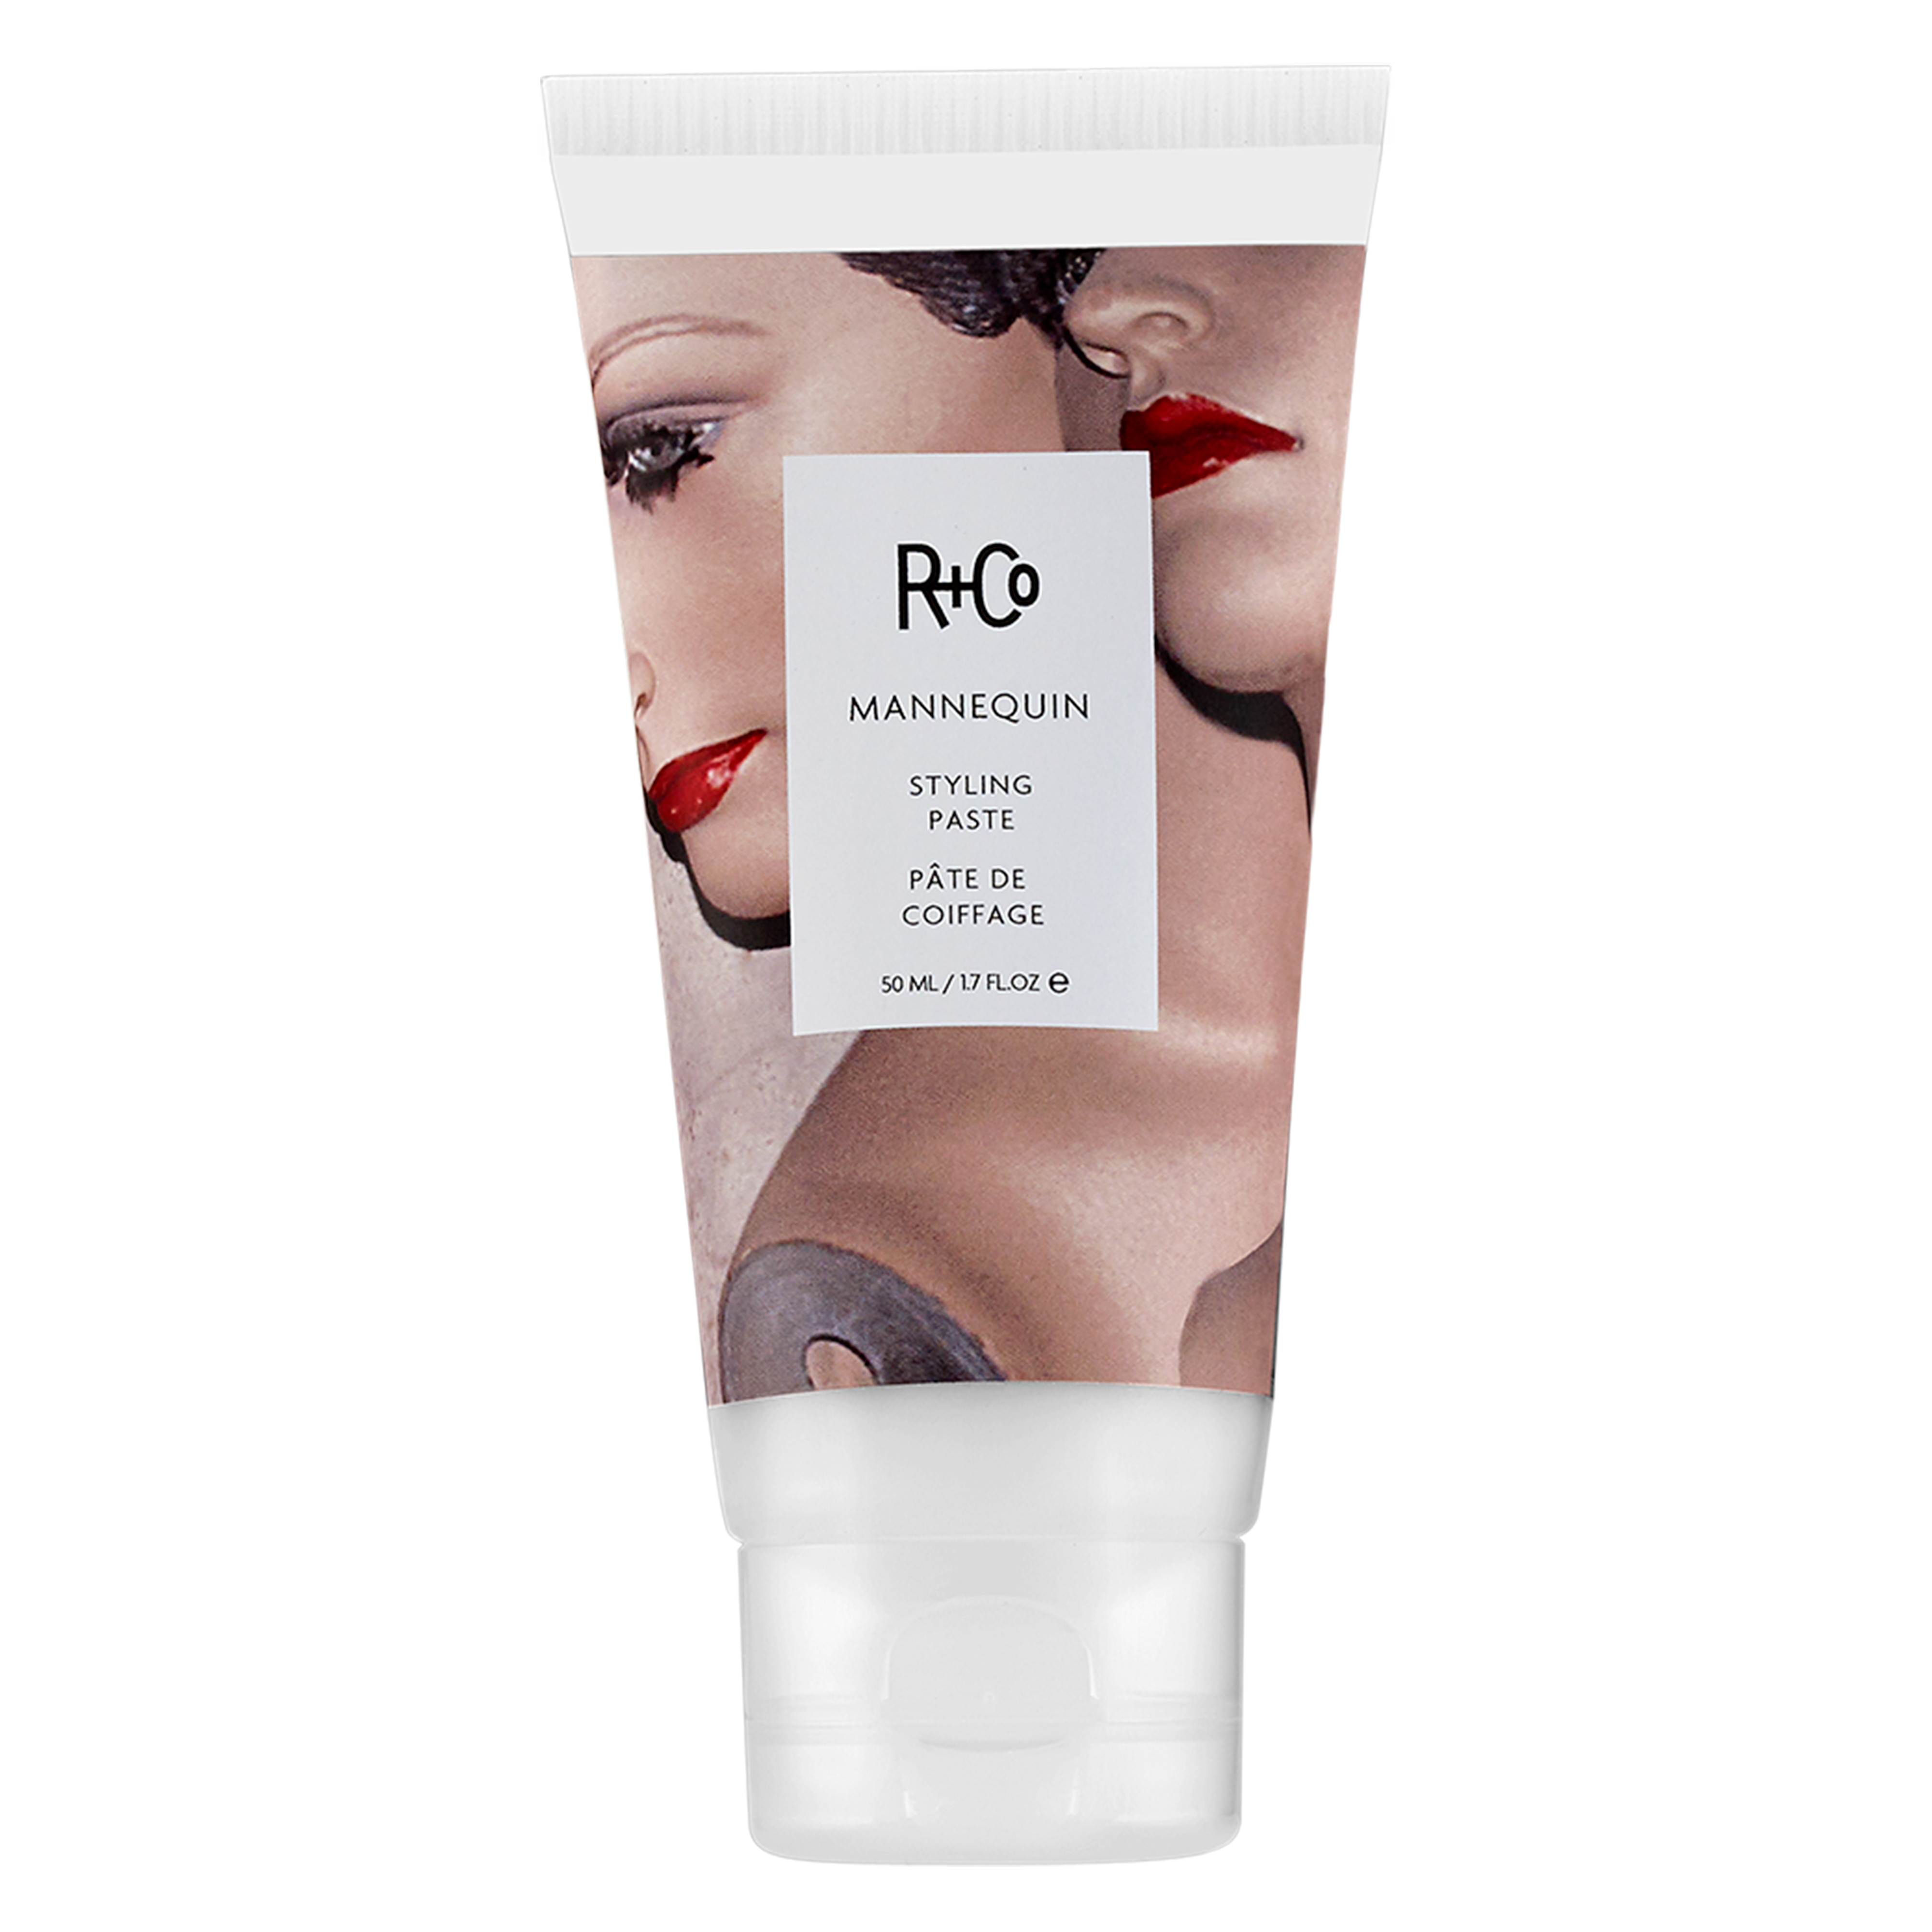 MANNEQUIN Styling Paste 50ml